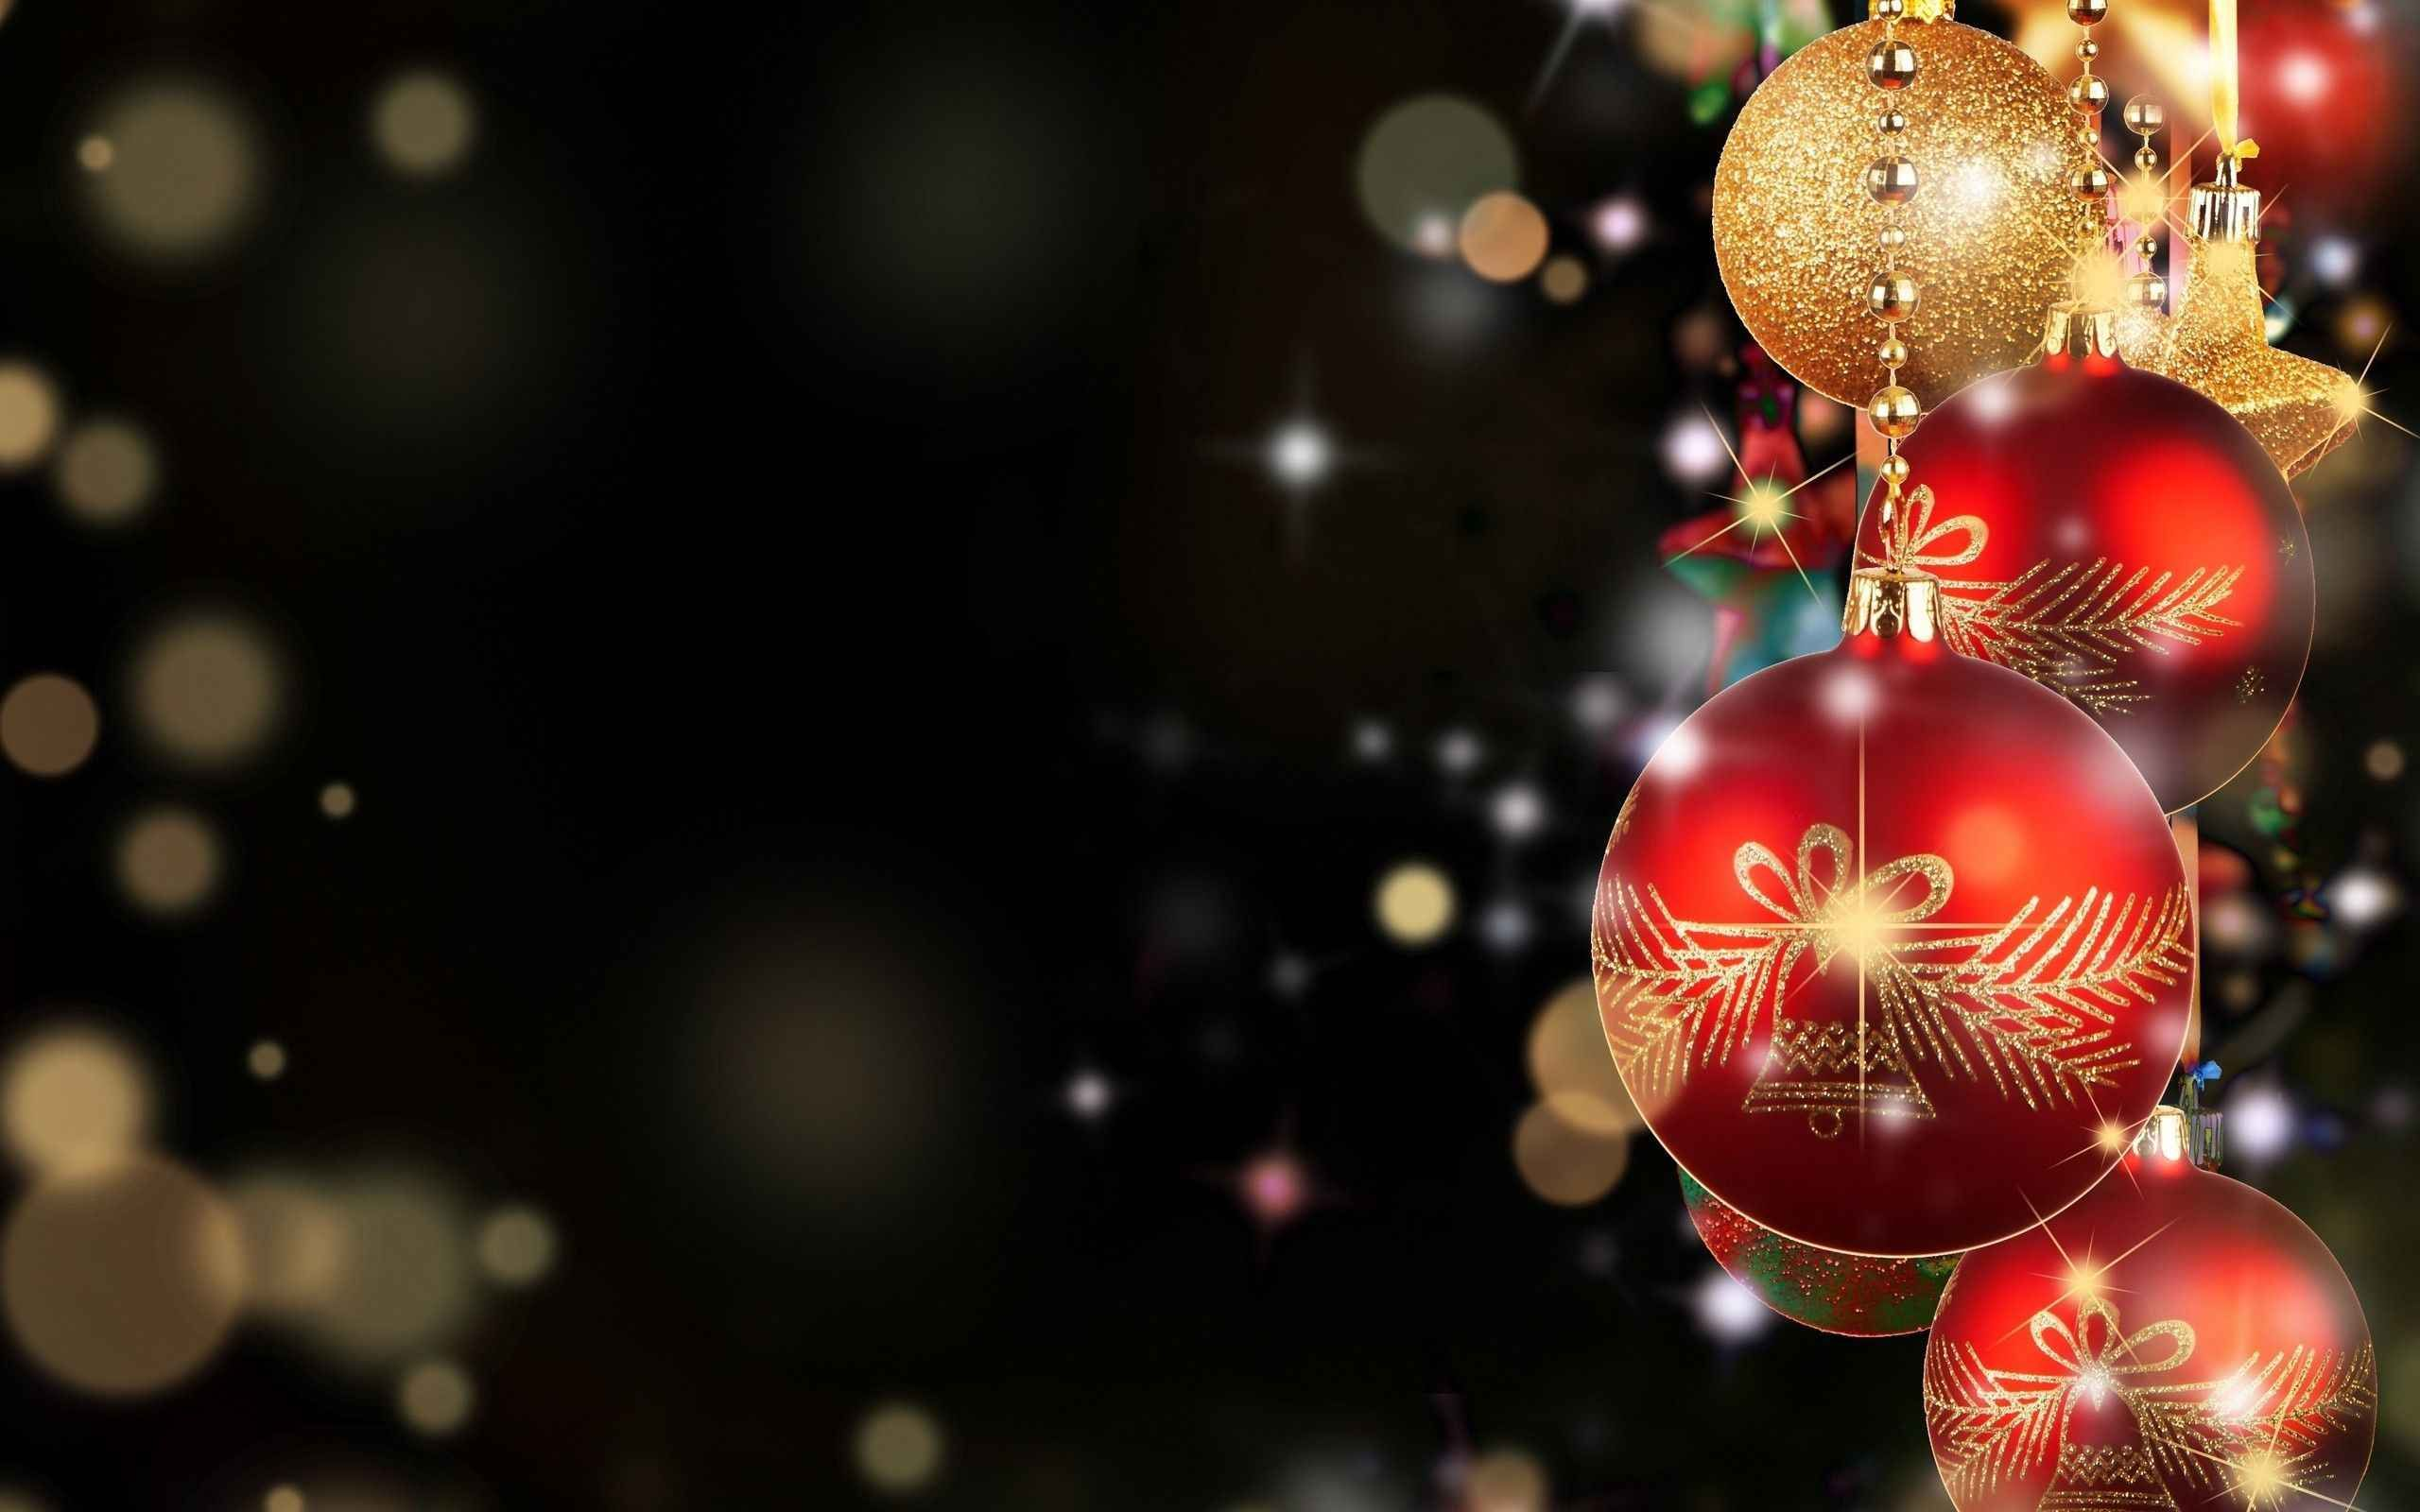 Hd Christmas Wallpaper.Christmas Wallpapers Full Hd Wallpaper Search Backgrounds